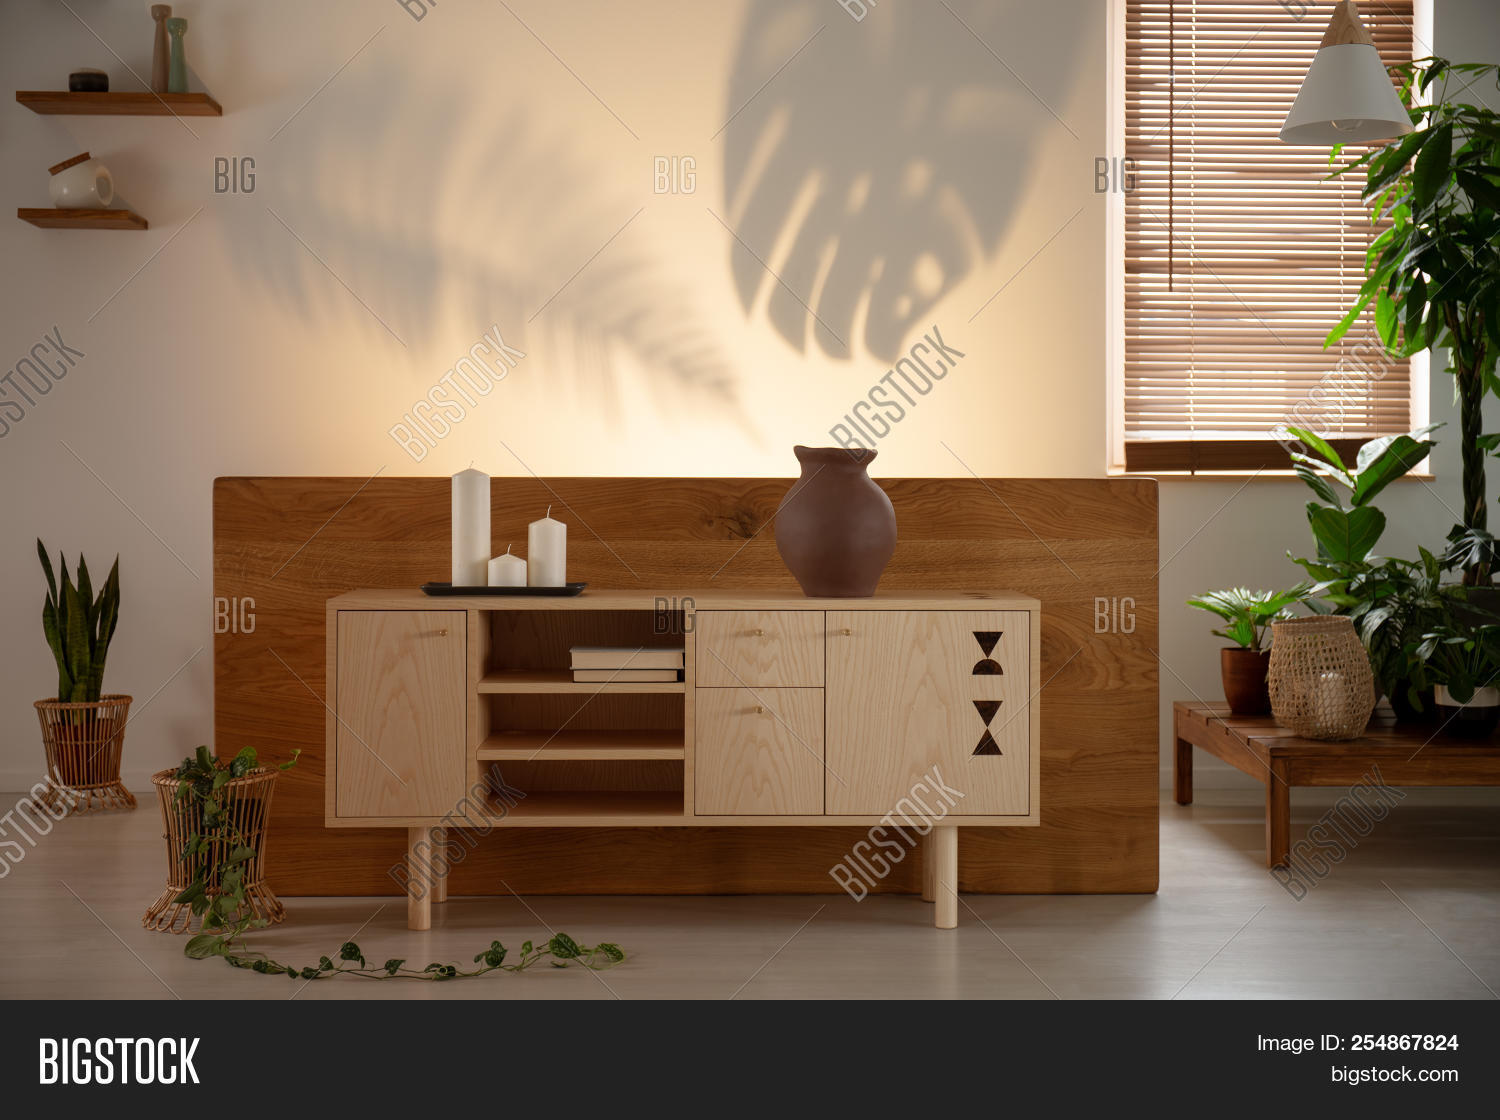 🔥 Candles On Wooden Cupboard In Bedroom Interior With Plants And